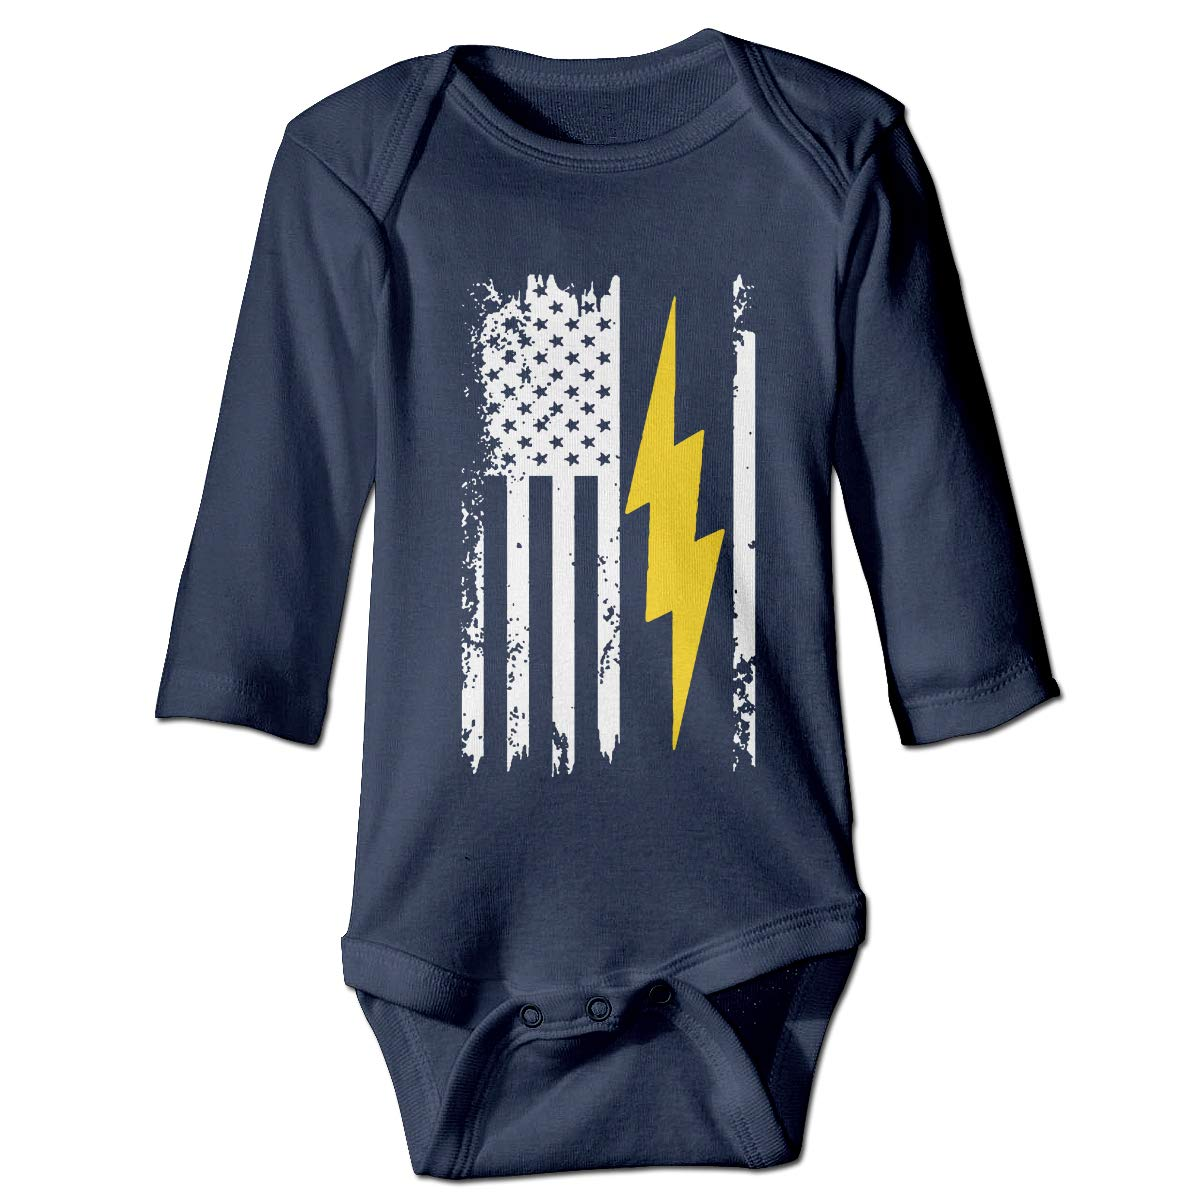 MMHOME Unisex Cotton Long Sleeve American Flag Lightning Bolt Electrician Baby Kids Sleeveless Onesies Outfits Navy